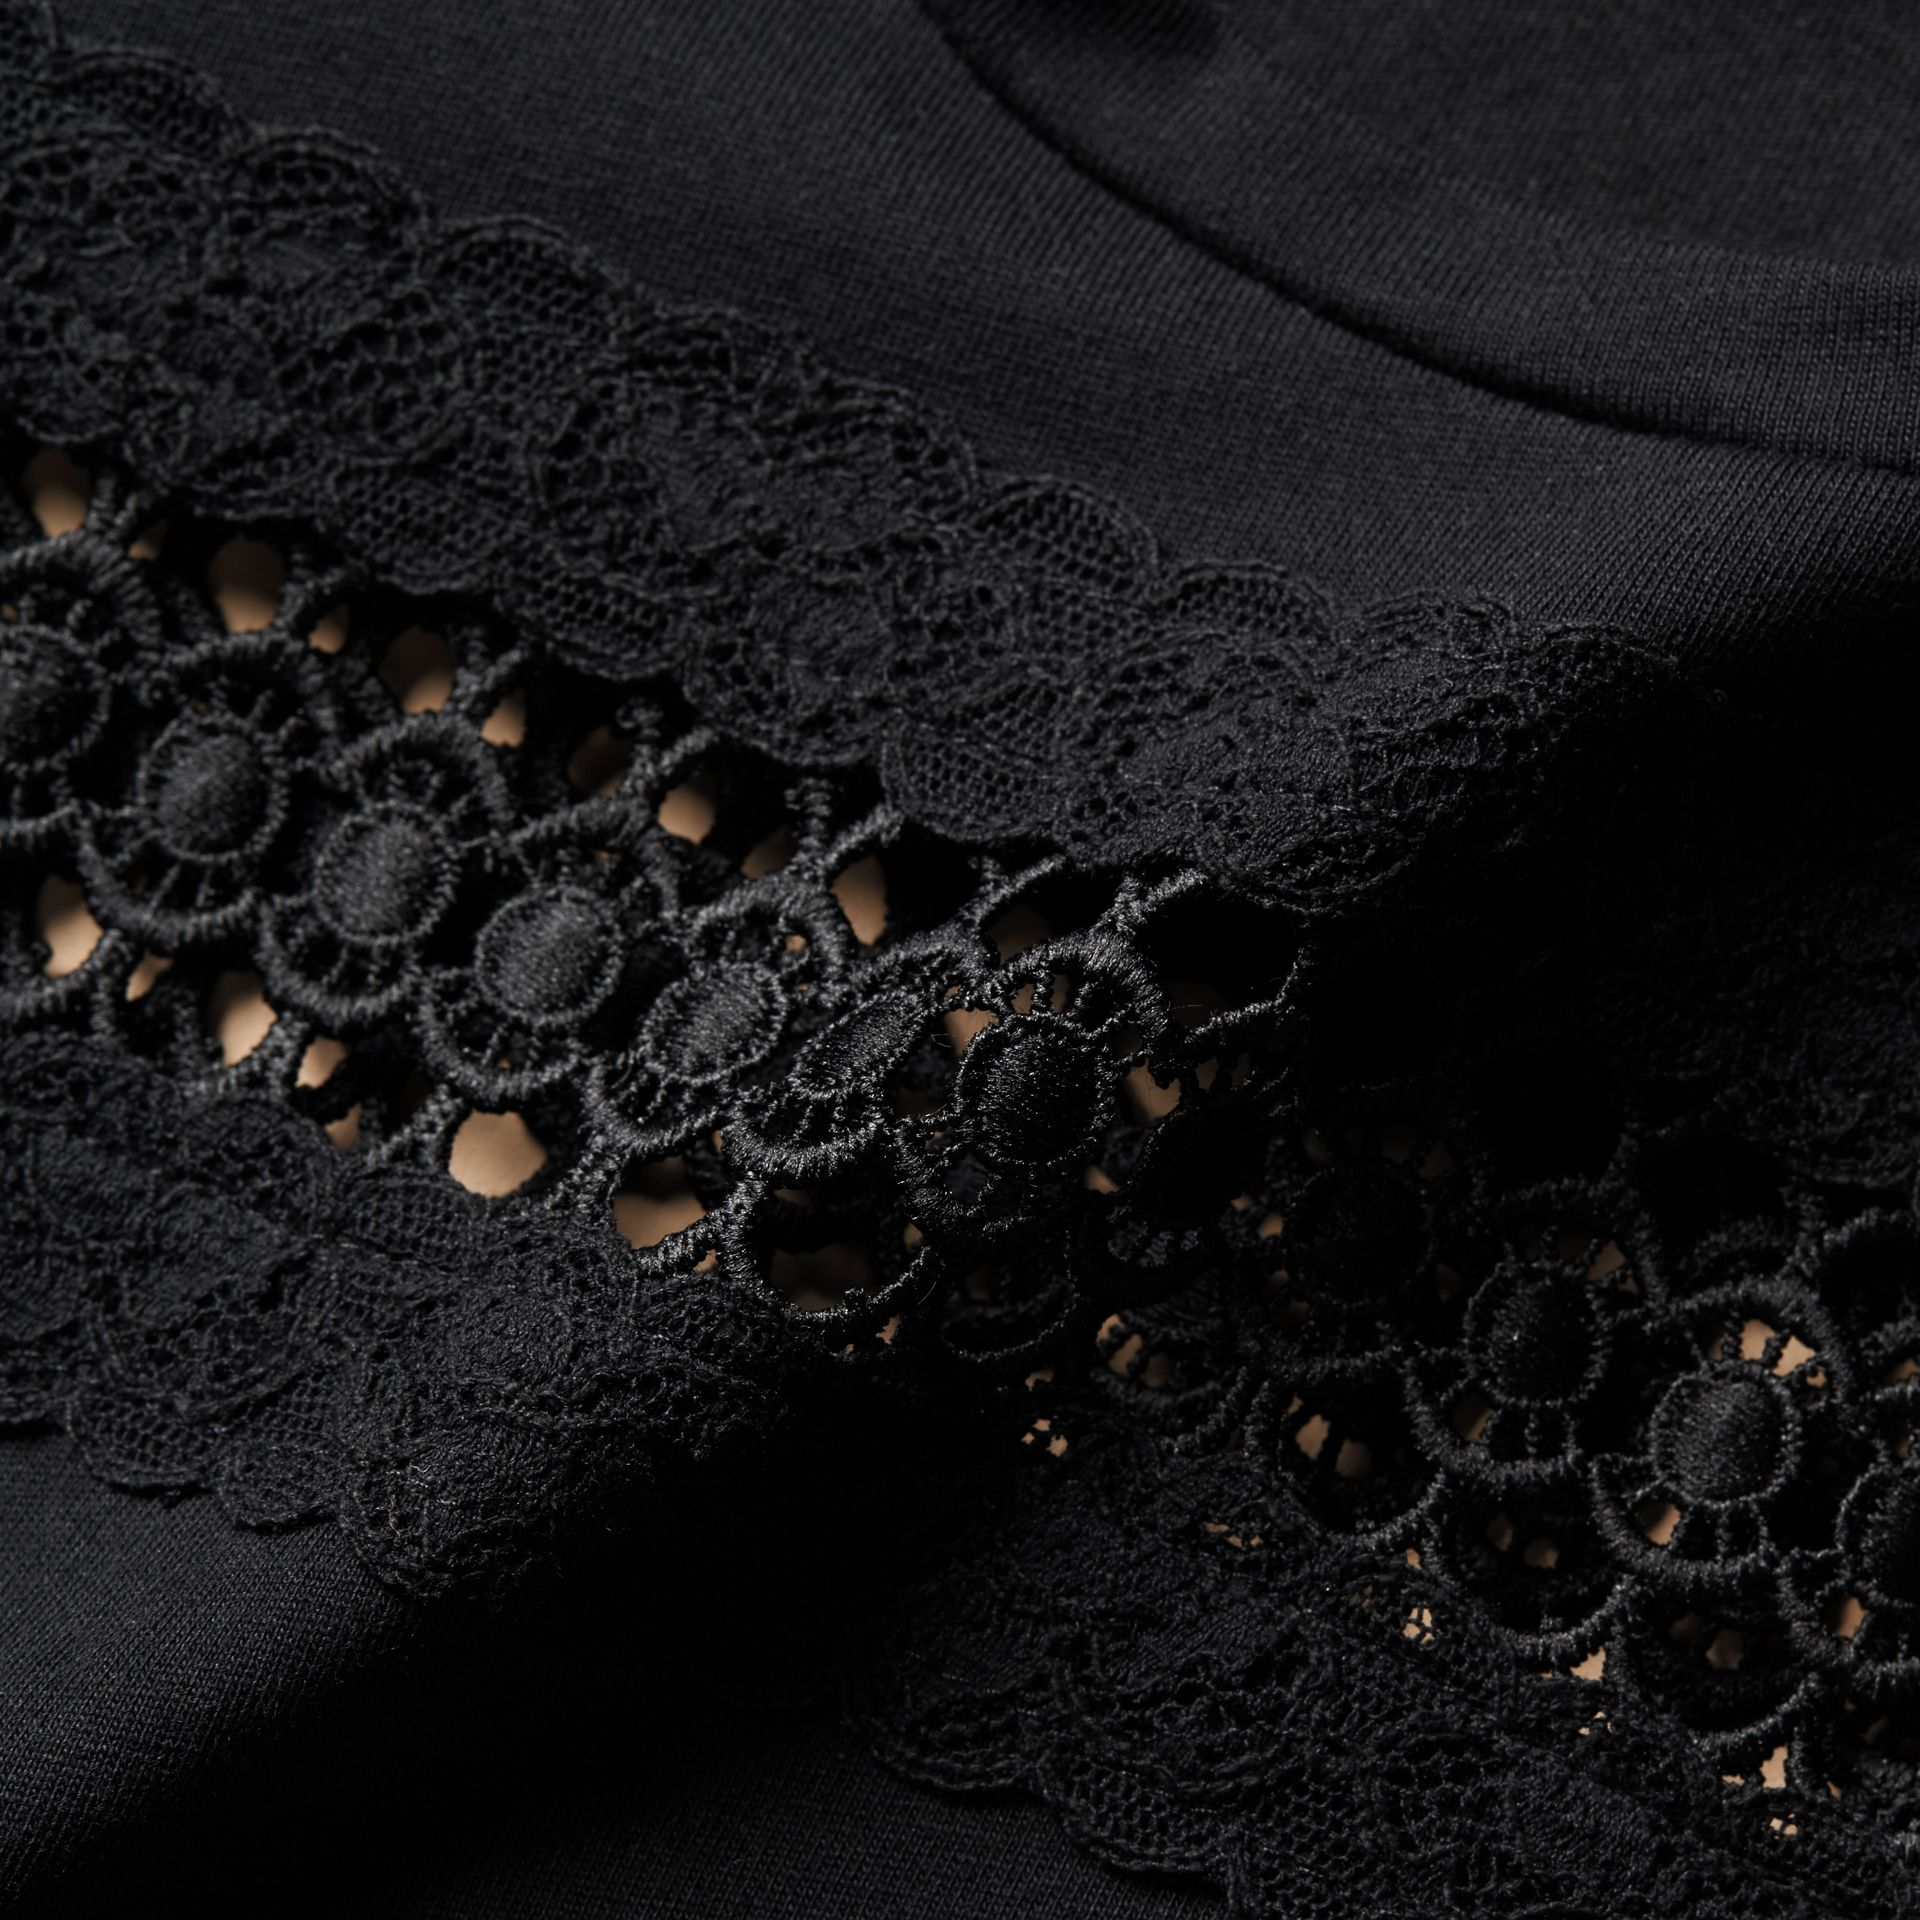 Lace Detail Cotton T-shirt Black - gallery image 2